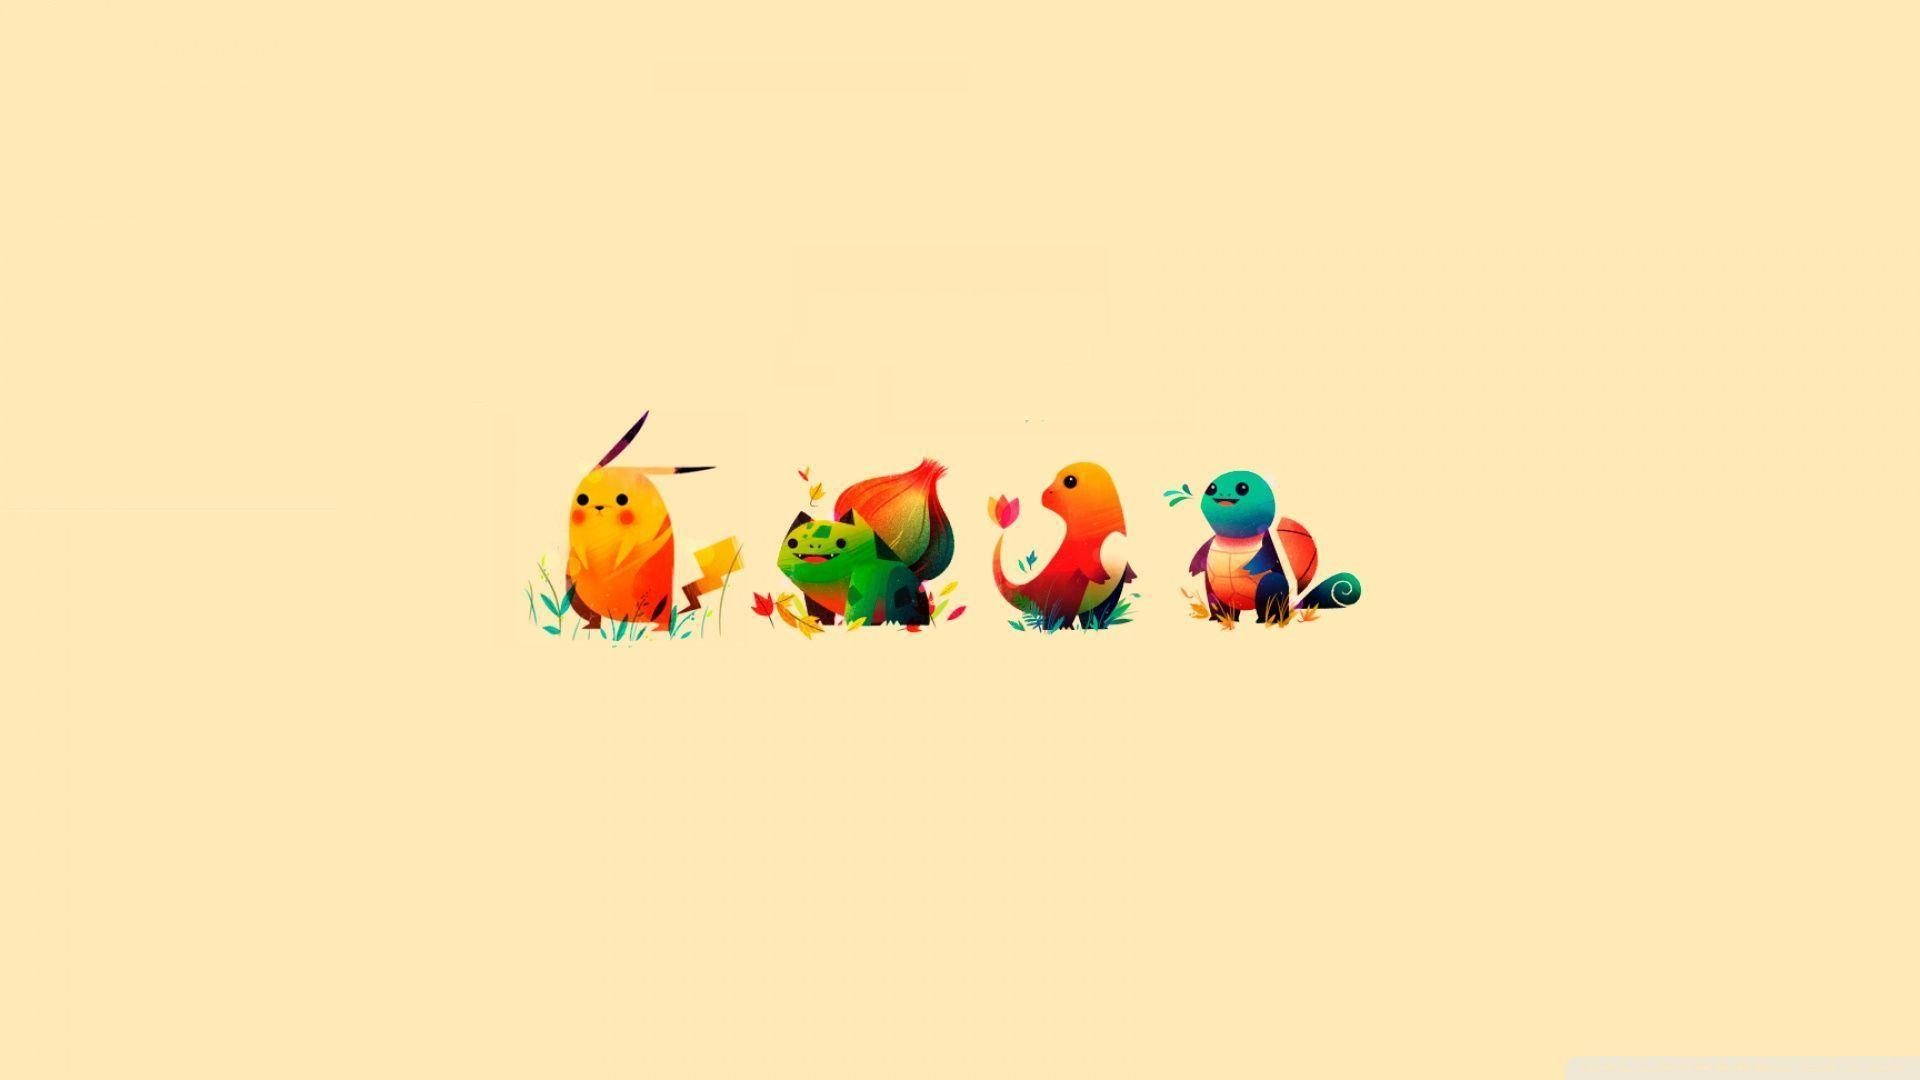 Download Pokemon Bulbasaur Pikachu Charmander Squirtle Wallpapers